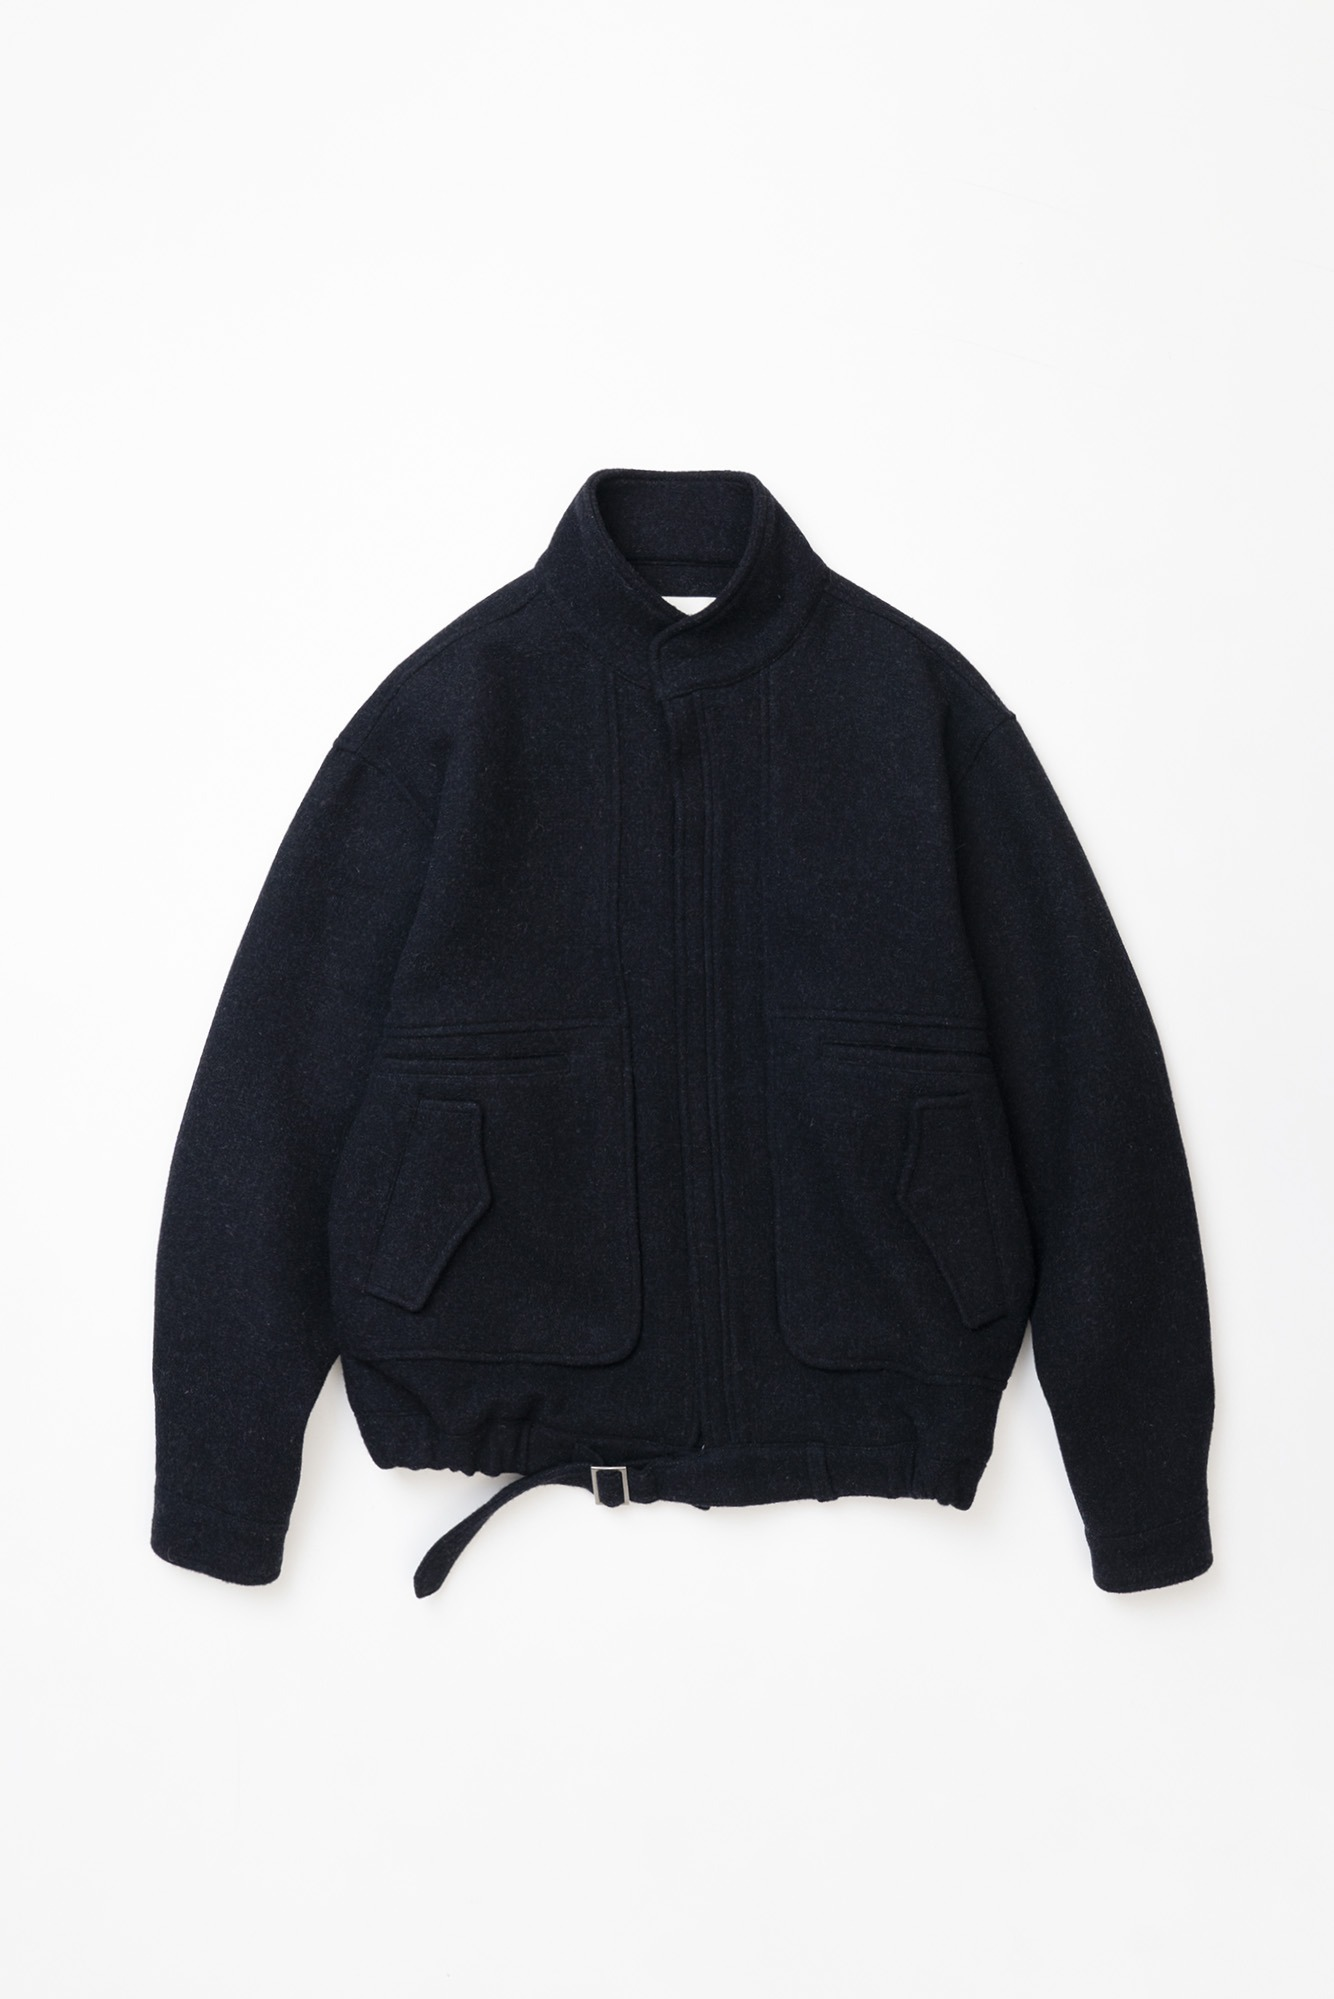 "OOPARTS Hem Belted Crop-Blouson Jacket ""Navy"""